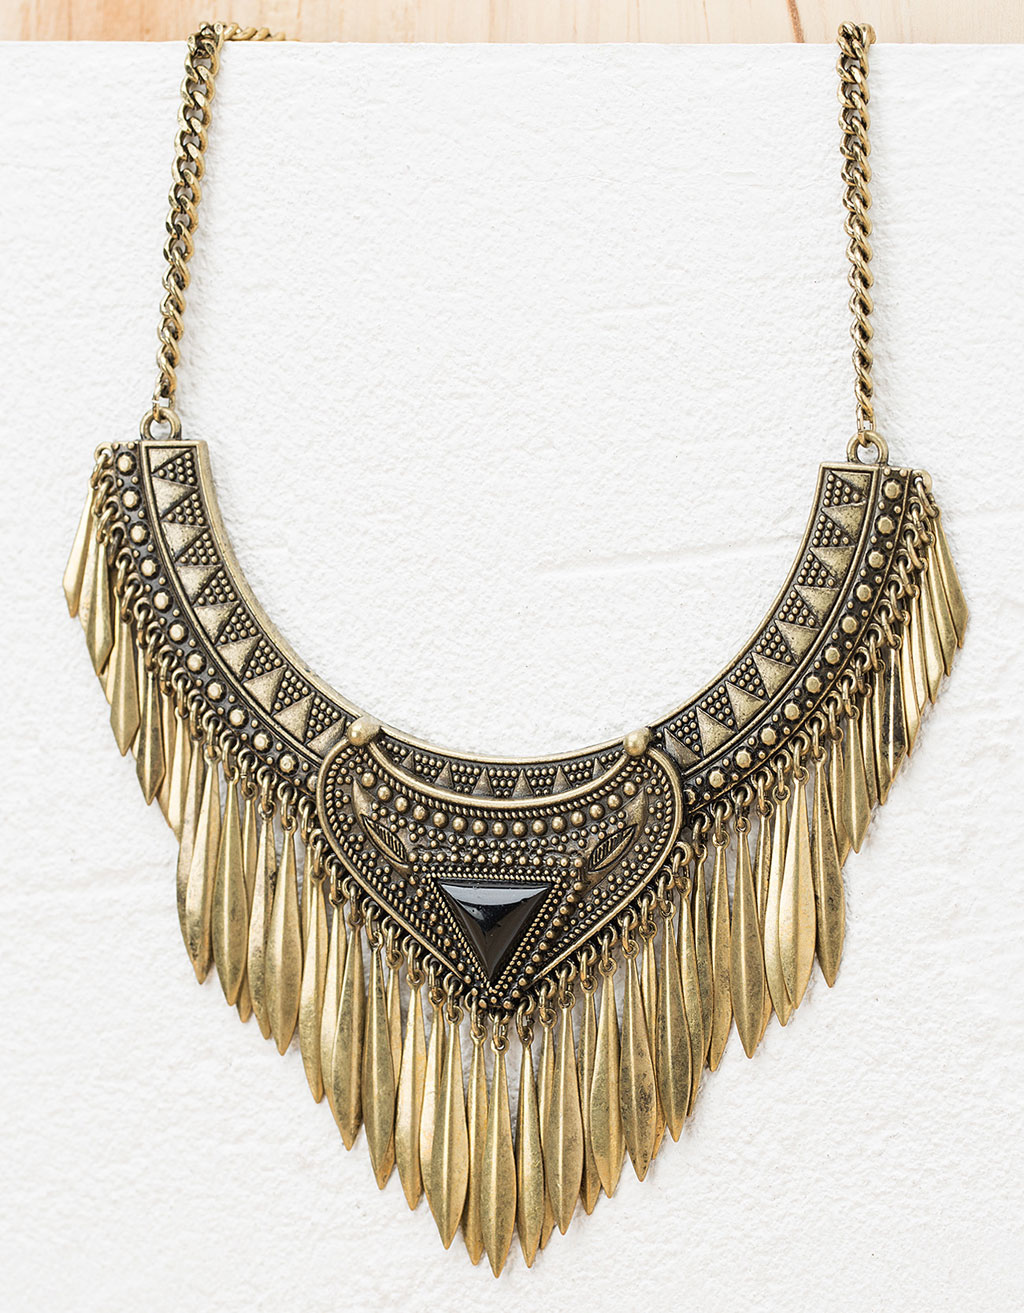 Fringed ethnic torque necklace